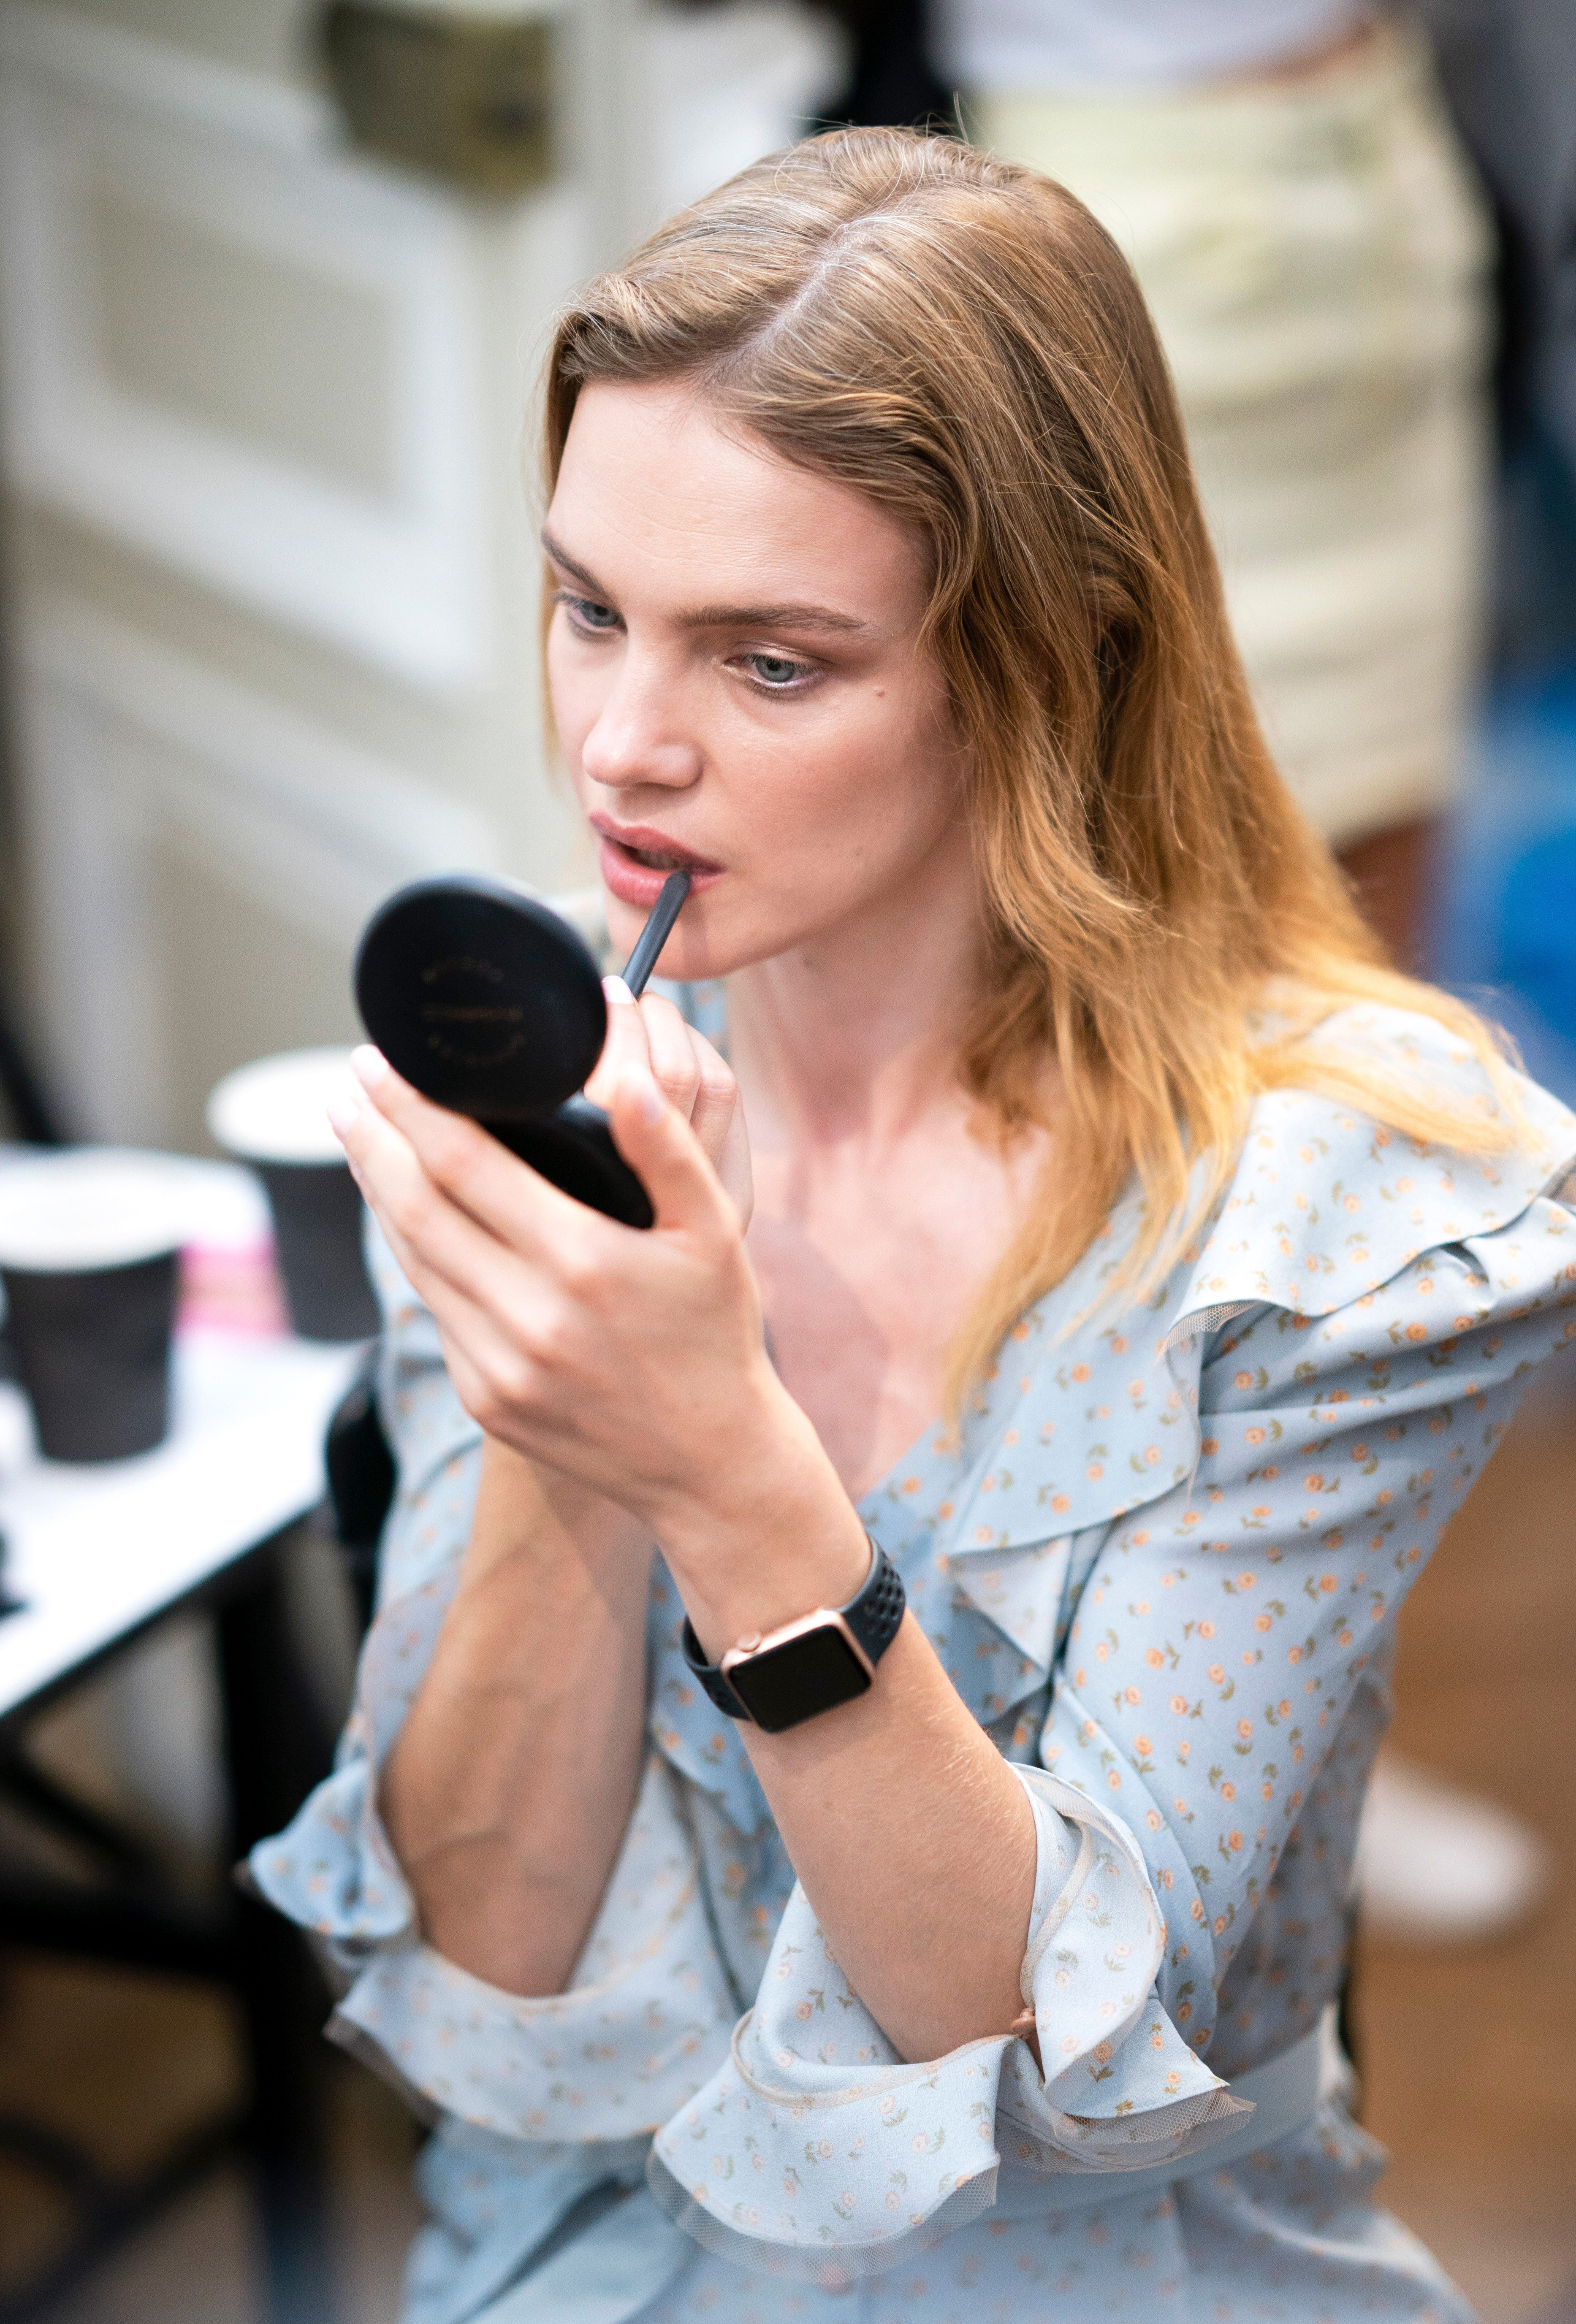 What You Need To Know Before Buying Used Make-Up